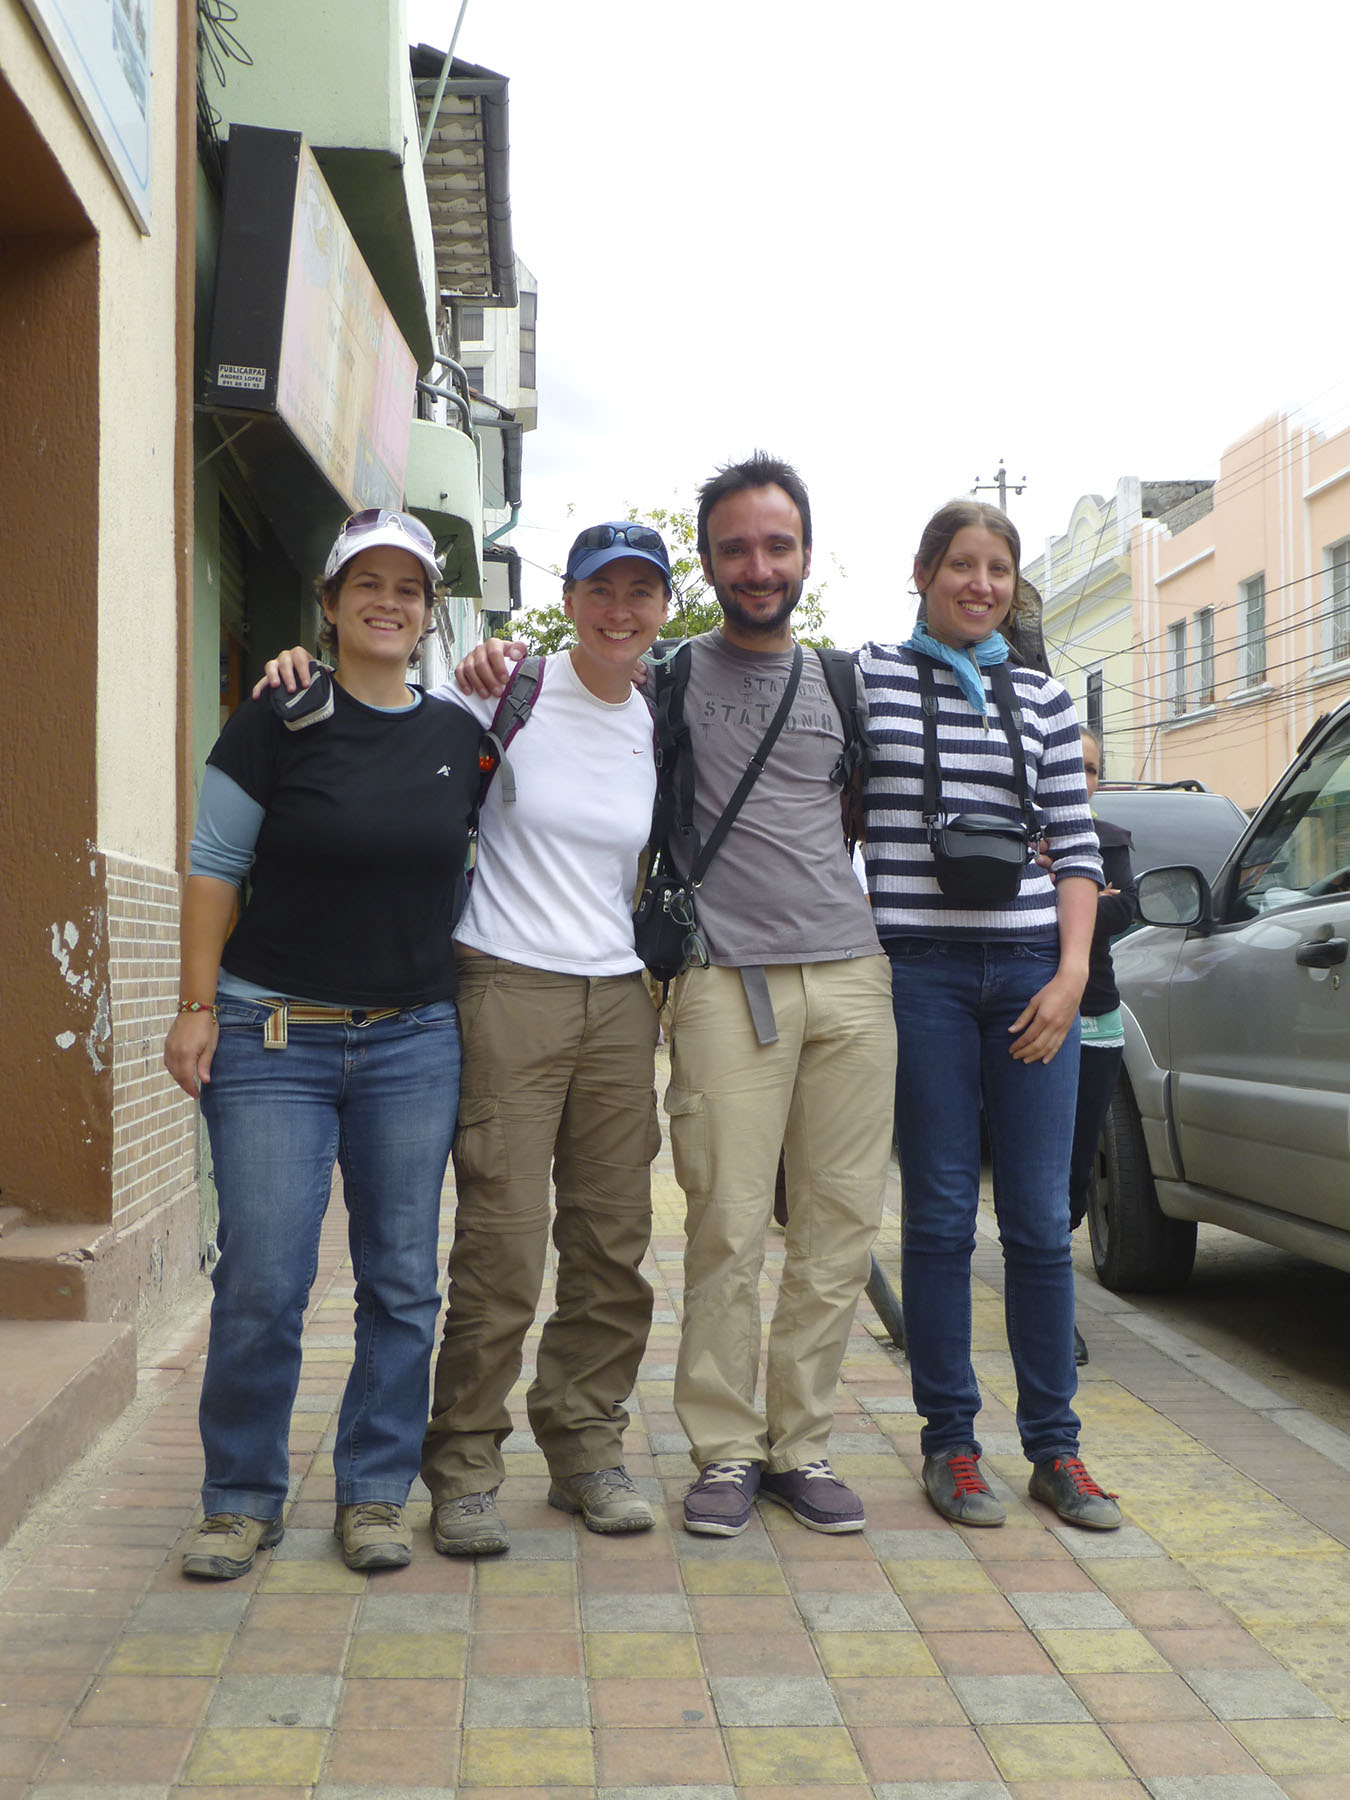 A farewell photo with Guillaume and Mathilde